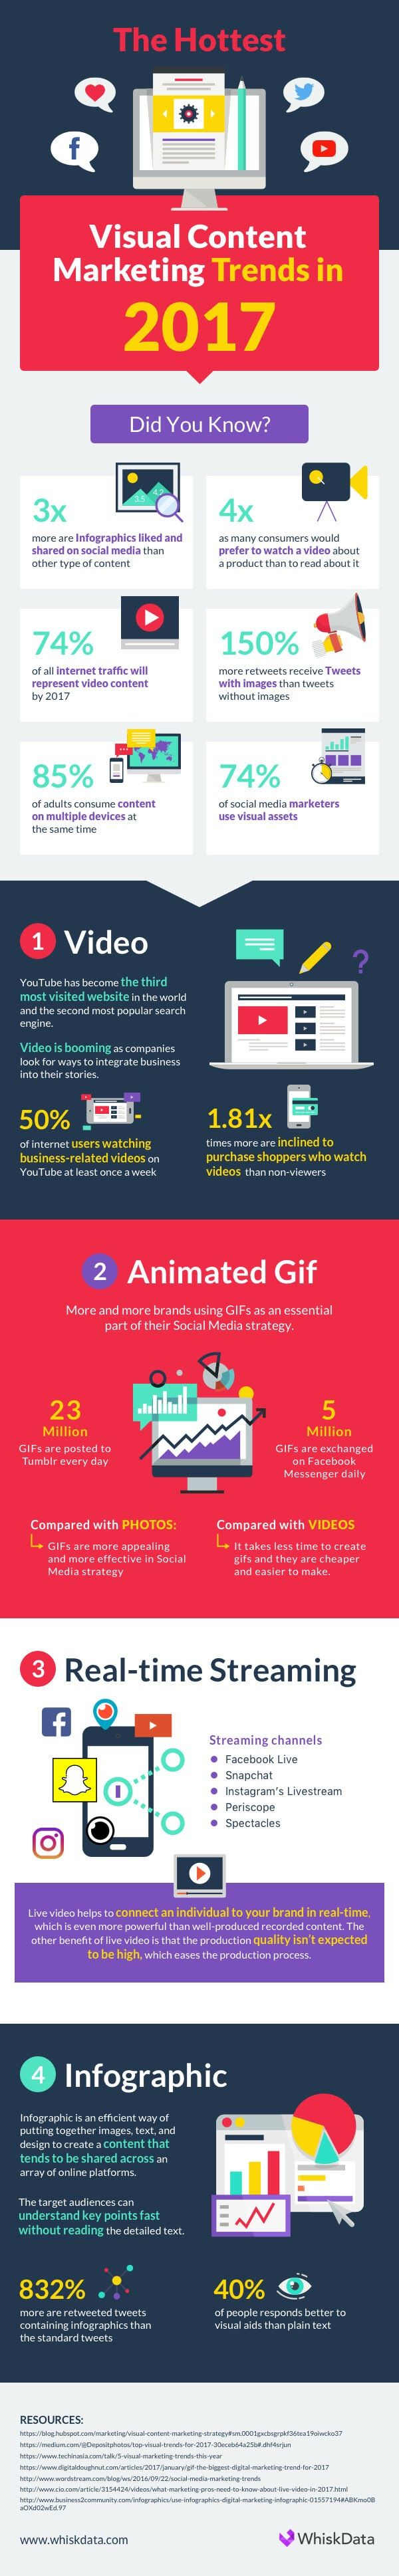 The Hottest Visual Content Marketing Trends in 2017 [infographic] | Social Media Today